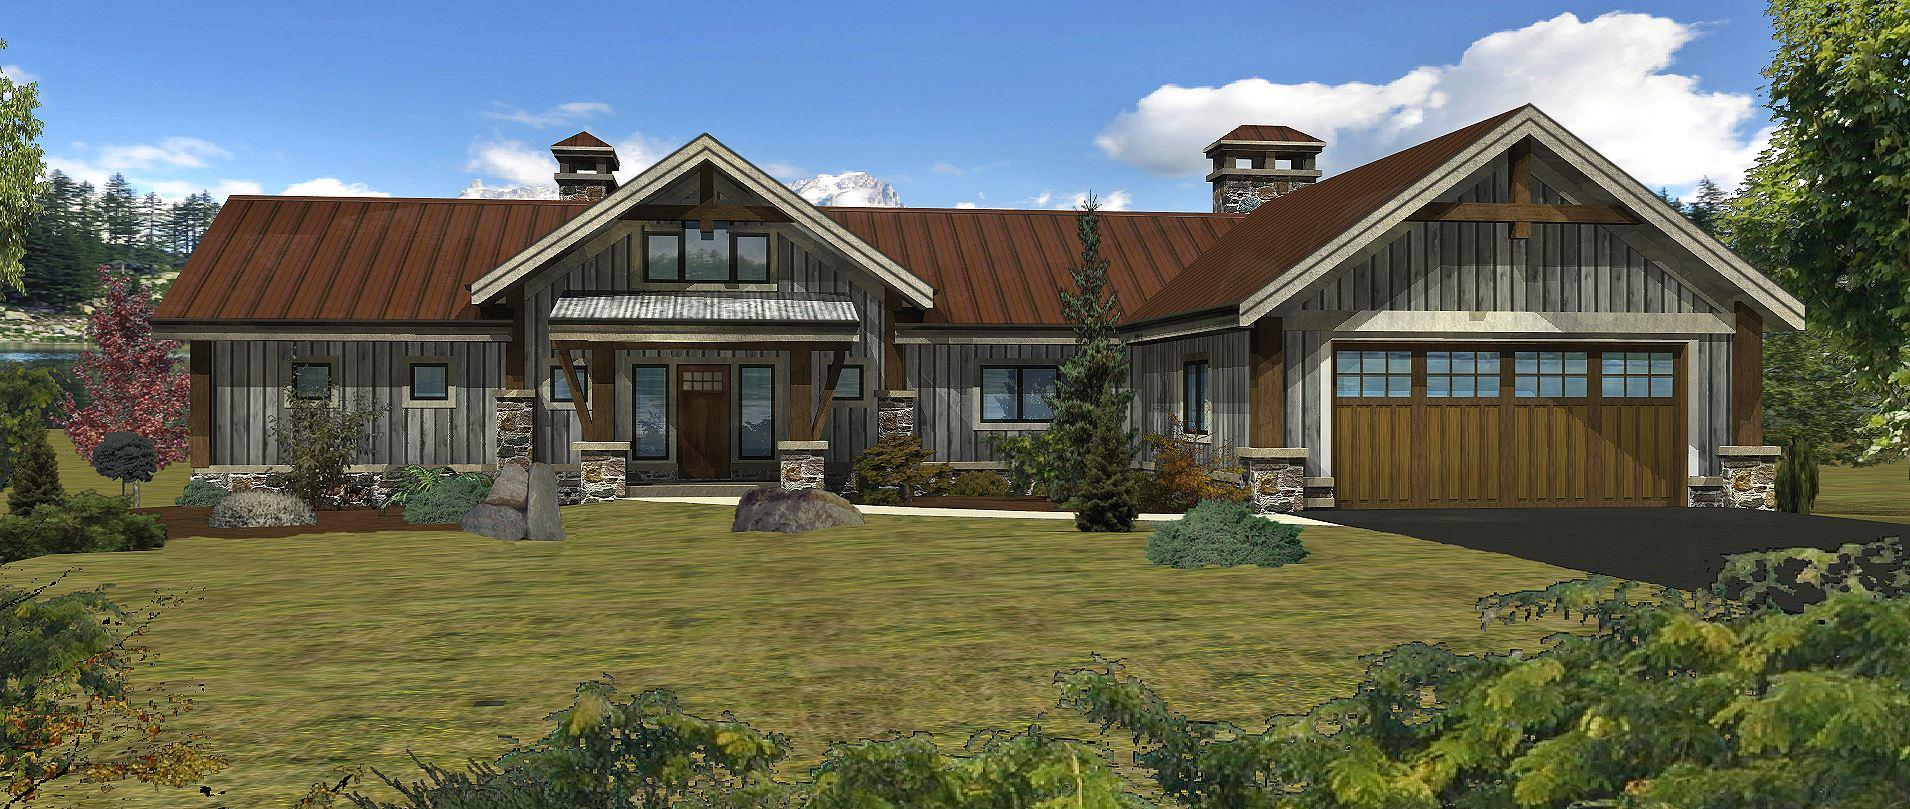 Bear River - Front Rendering by Wisconsin Log Homes 2